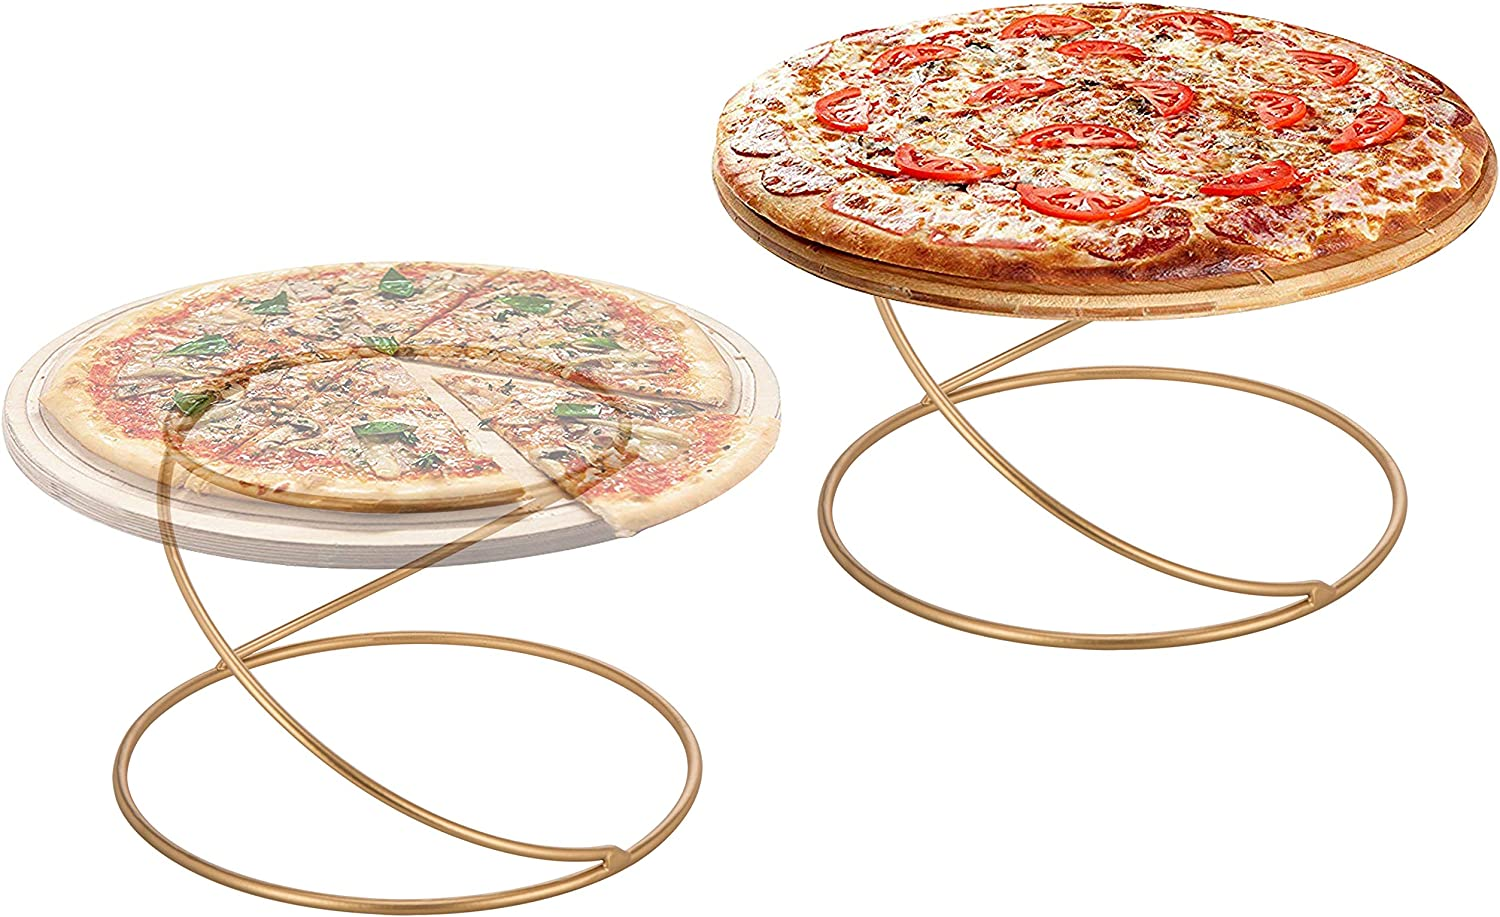 MyGift Modern Gold Wire Metal Pizza Tray Pedestal, Circular Serving Platter Riser Stands, Set of 2